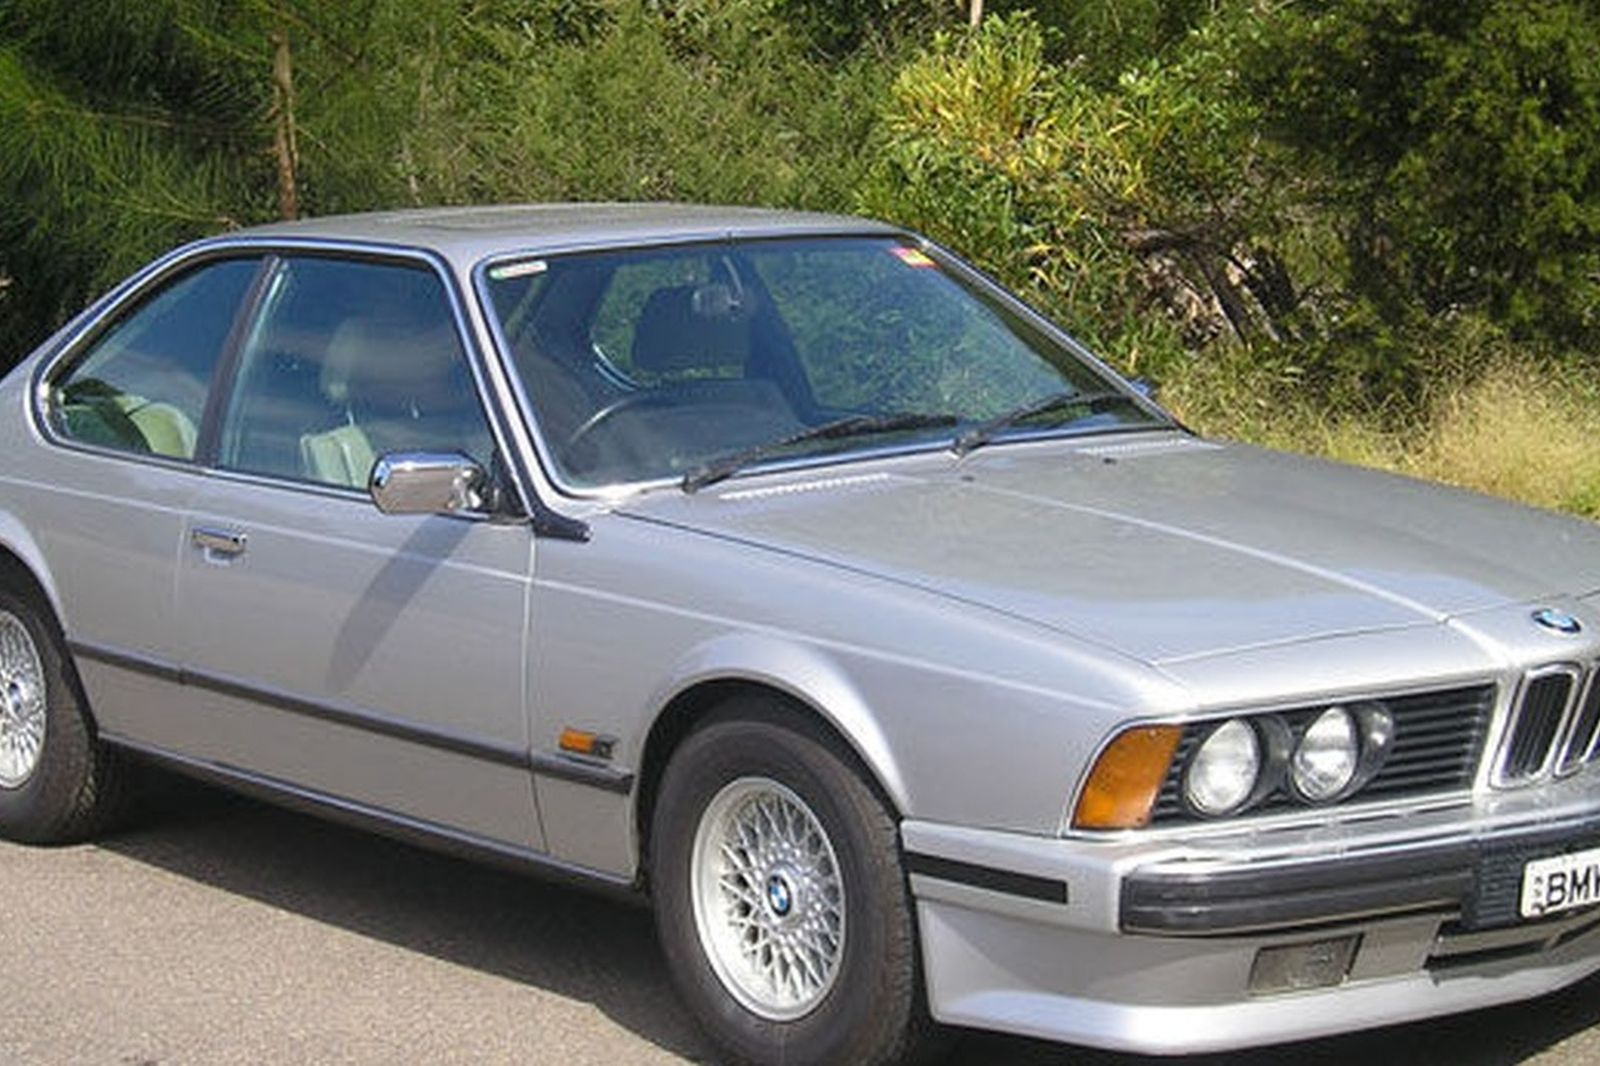 1983 bmw 635 csi coupe sold bmw 635 csi coupe auctions lot 26 shannons E24 633CSi at crackthecode.co